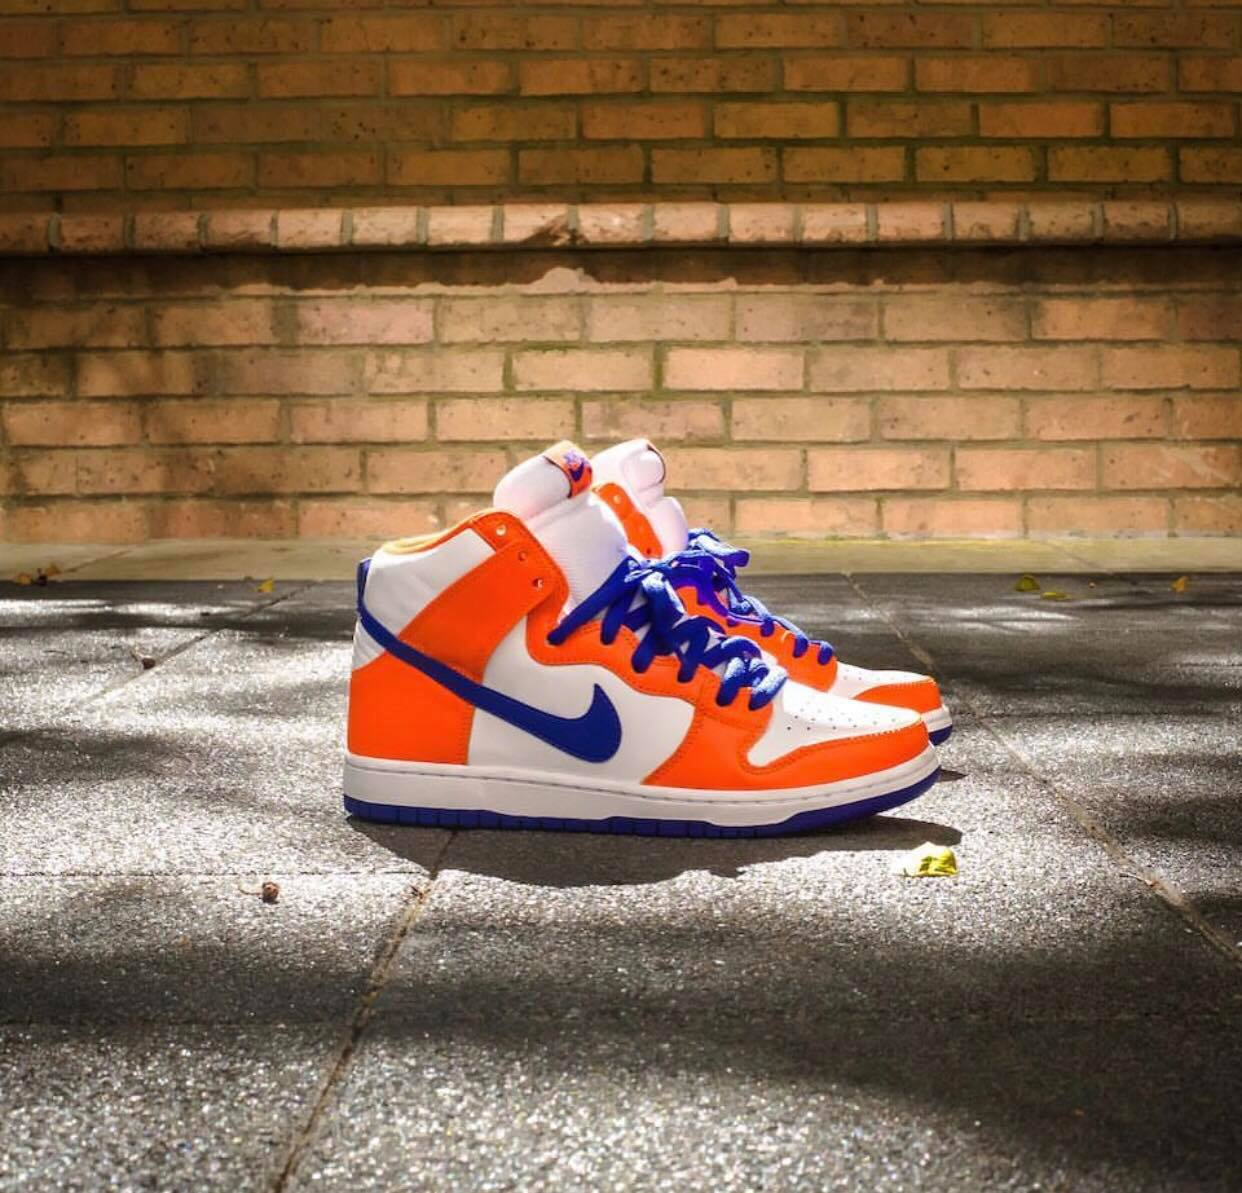 the latest 4a8ac 73e6e Nike SB Dunk High TRD QS 'Supa' - Quick Look and Release ...